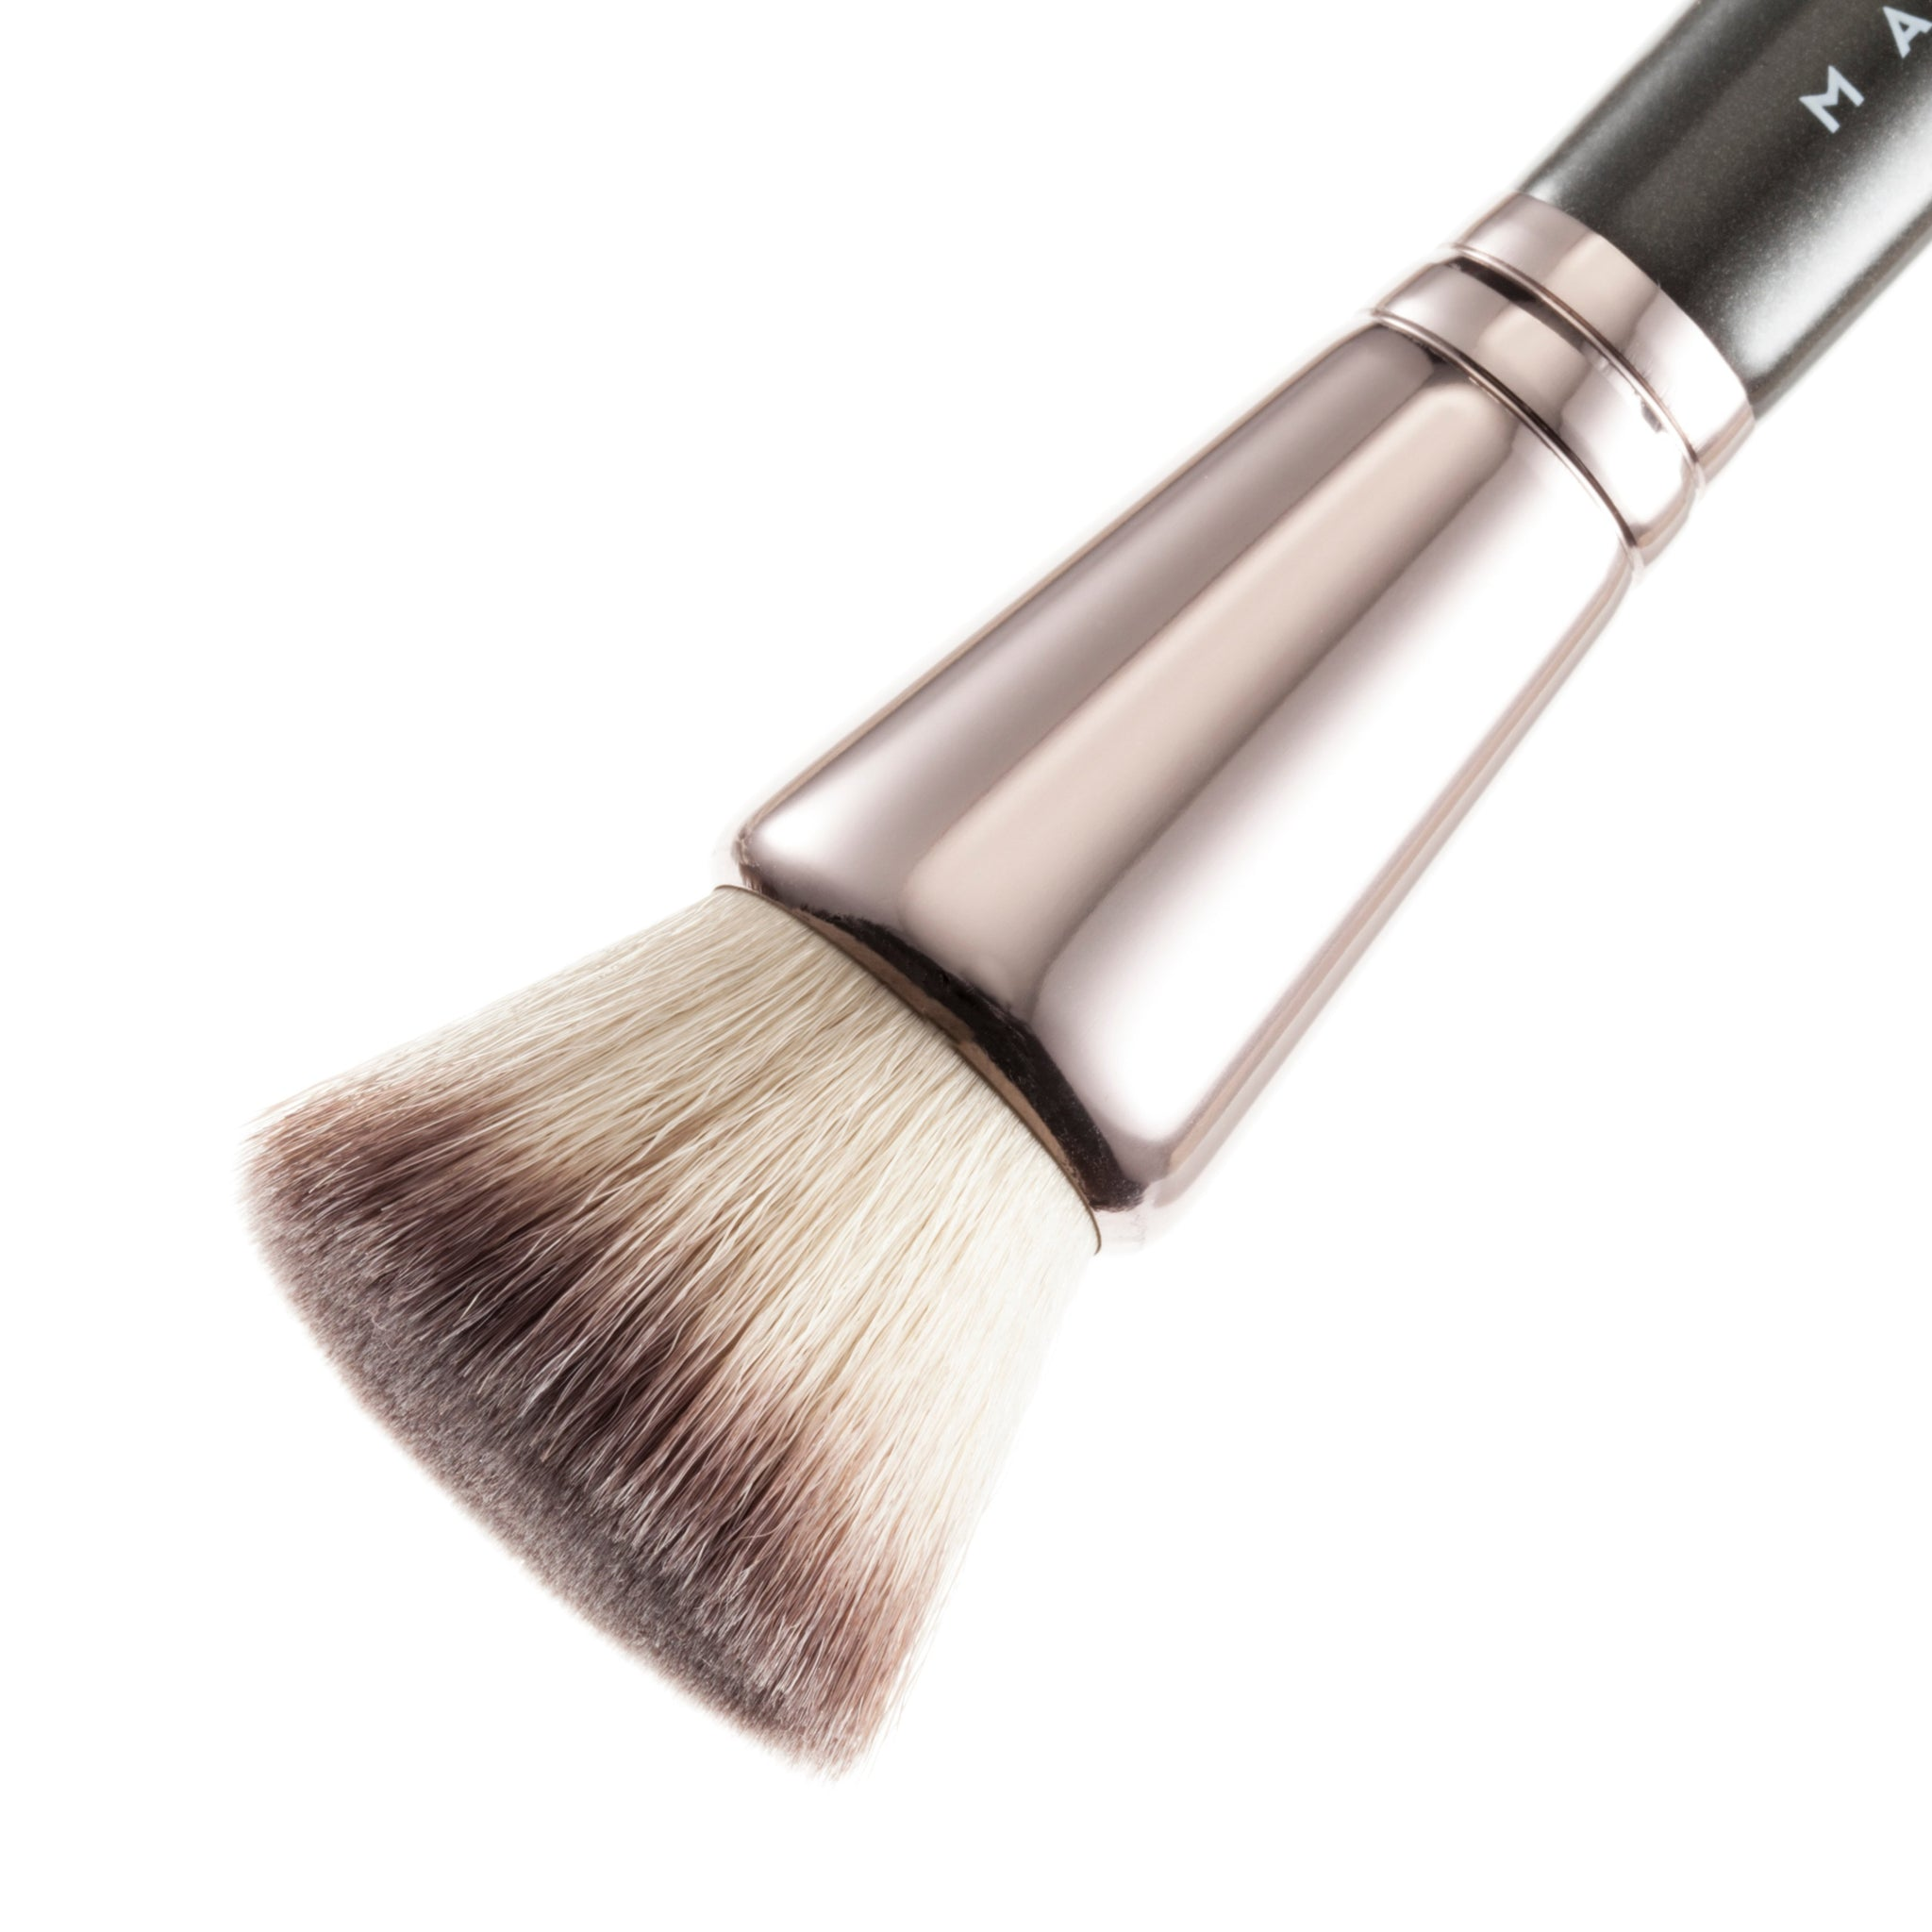 Foundation Stippling Brush by Makeup Geek #4